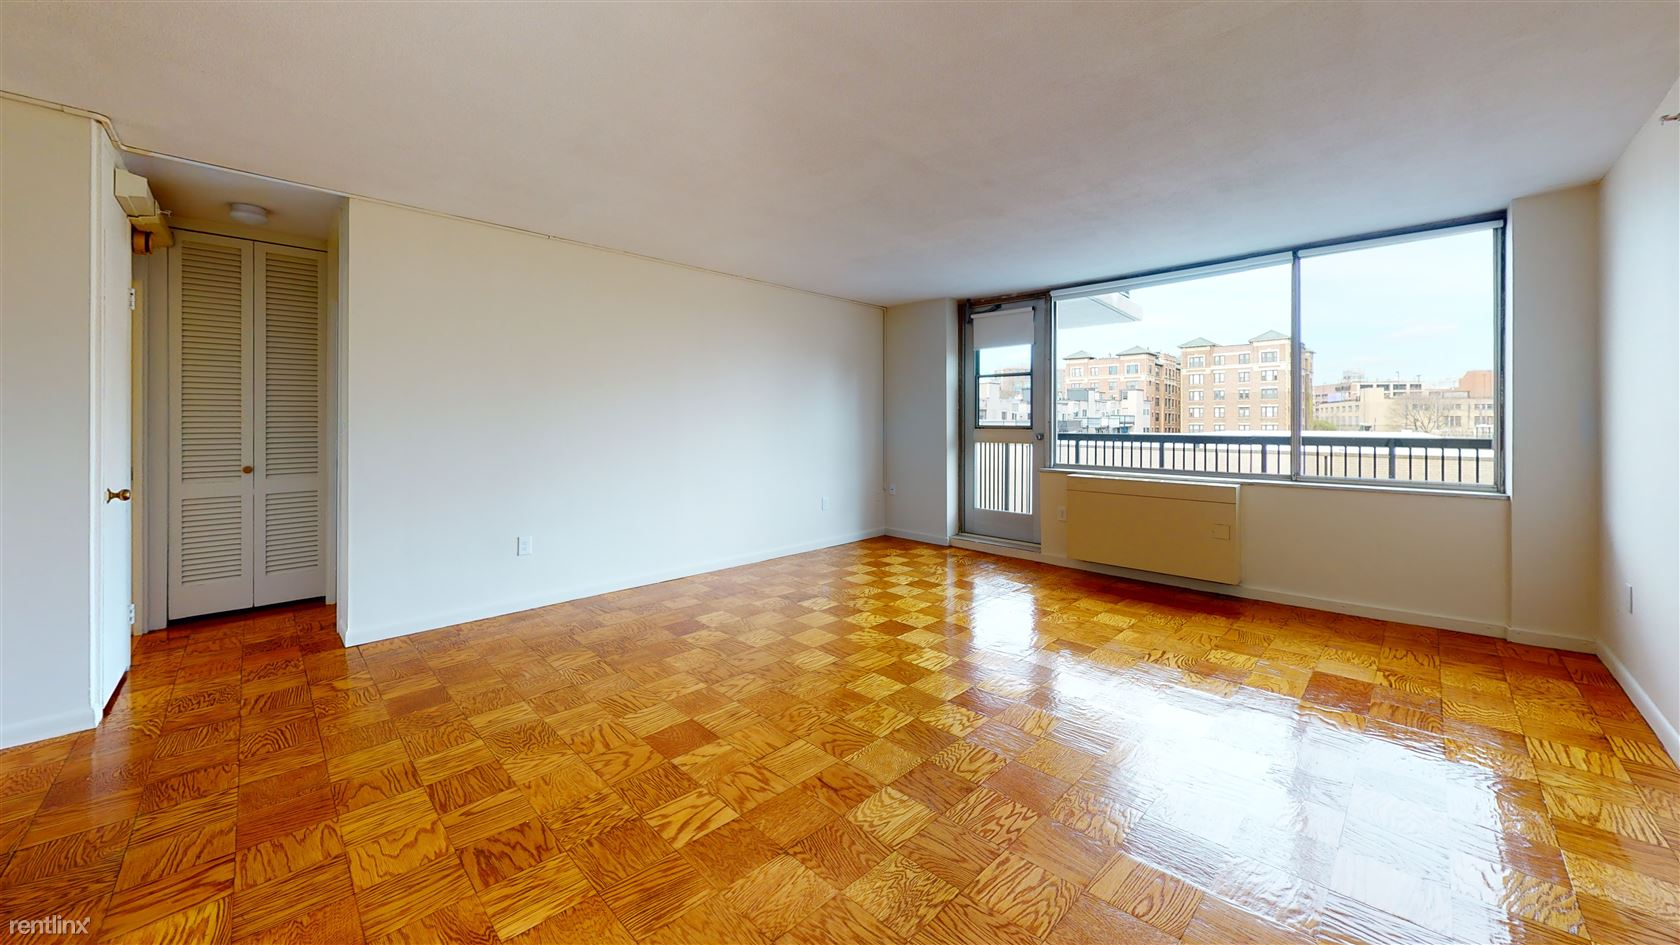 101 Monmouth St - 1800USD / month